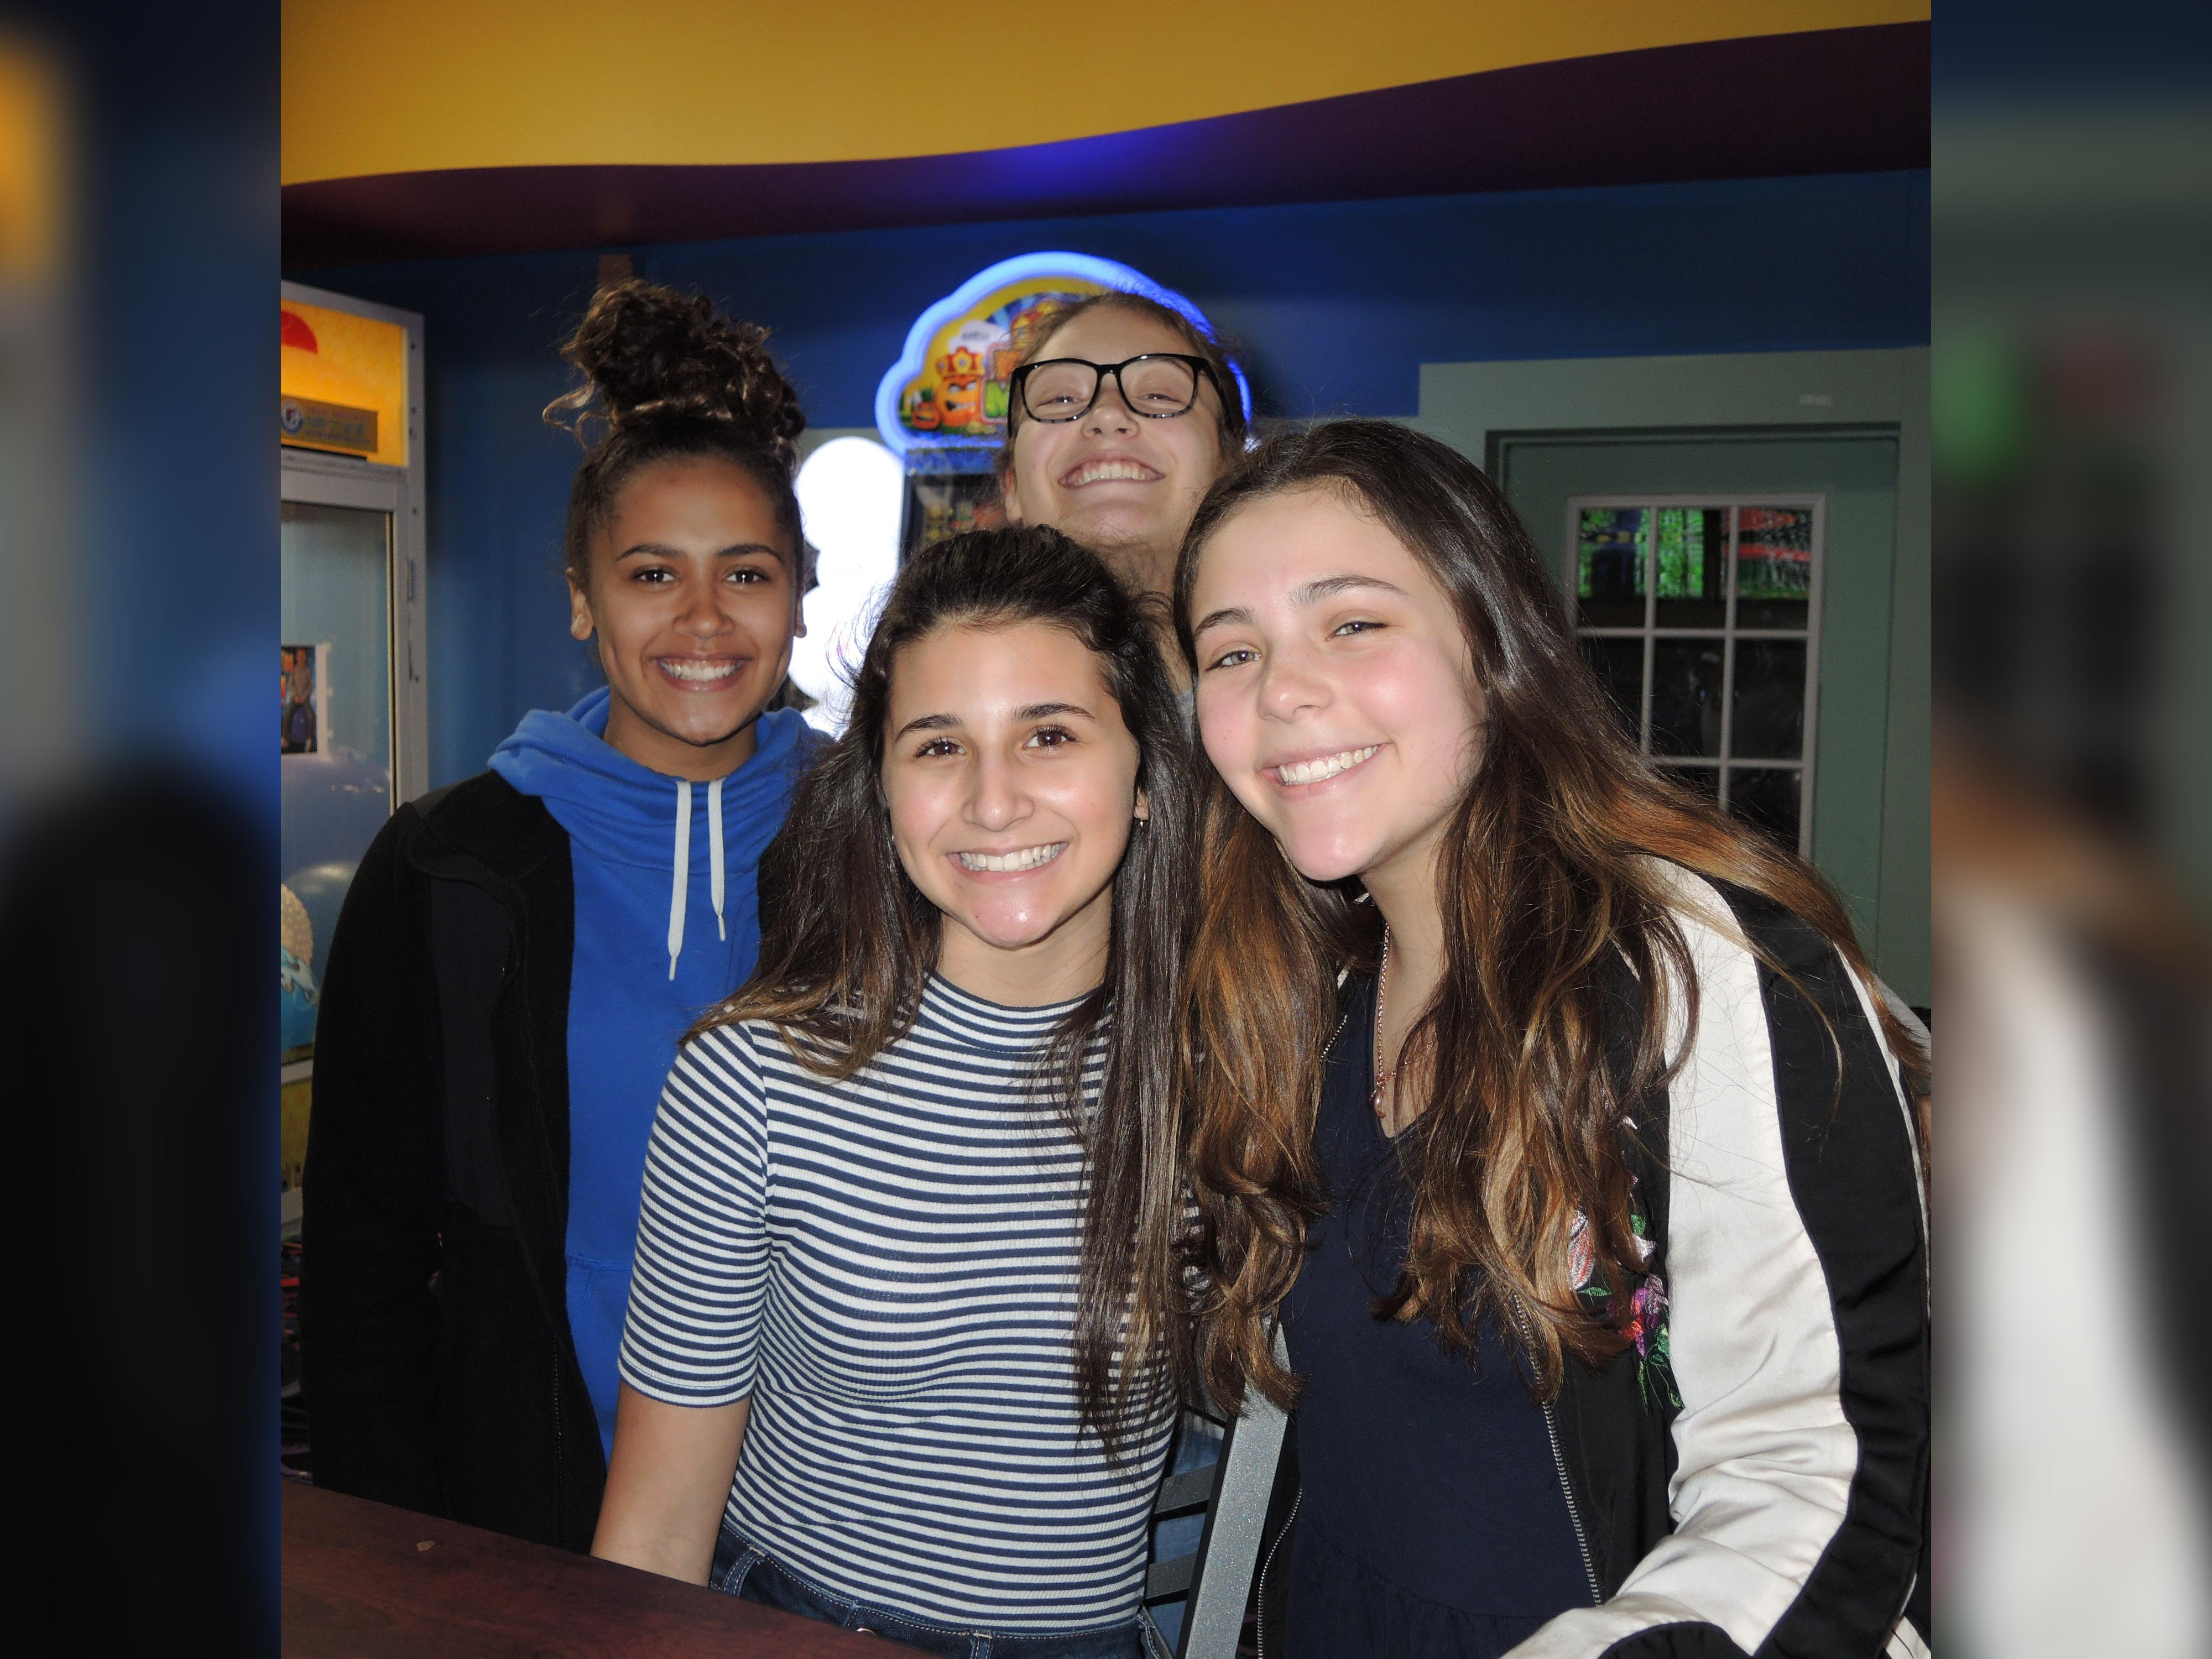 Blendon Students having fun at Gahanna Lanes